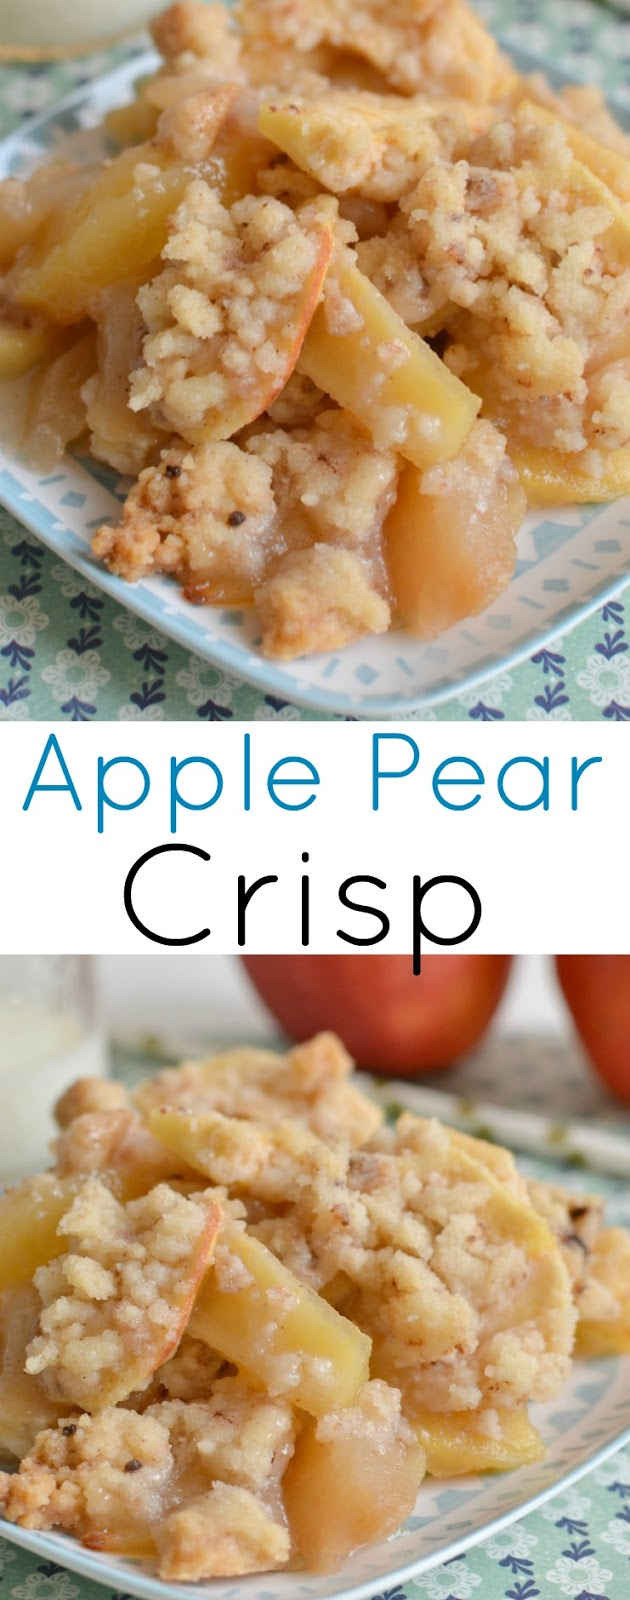 A fall family favorite dessert that's tried and true! The crispy topping is buttery and sweet and the pears and apples are a perfect combo!